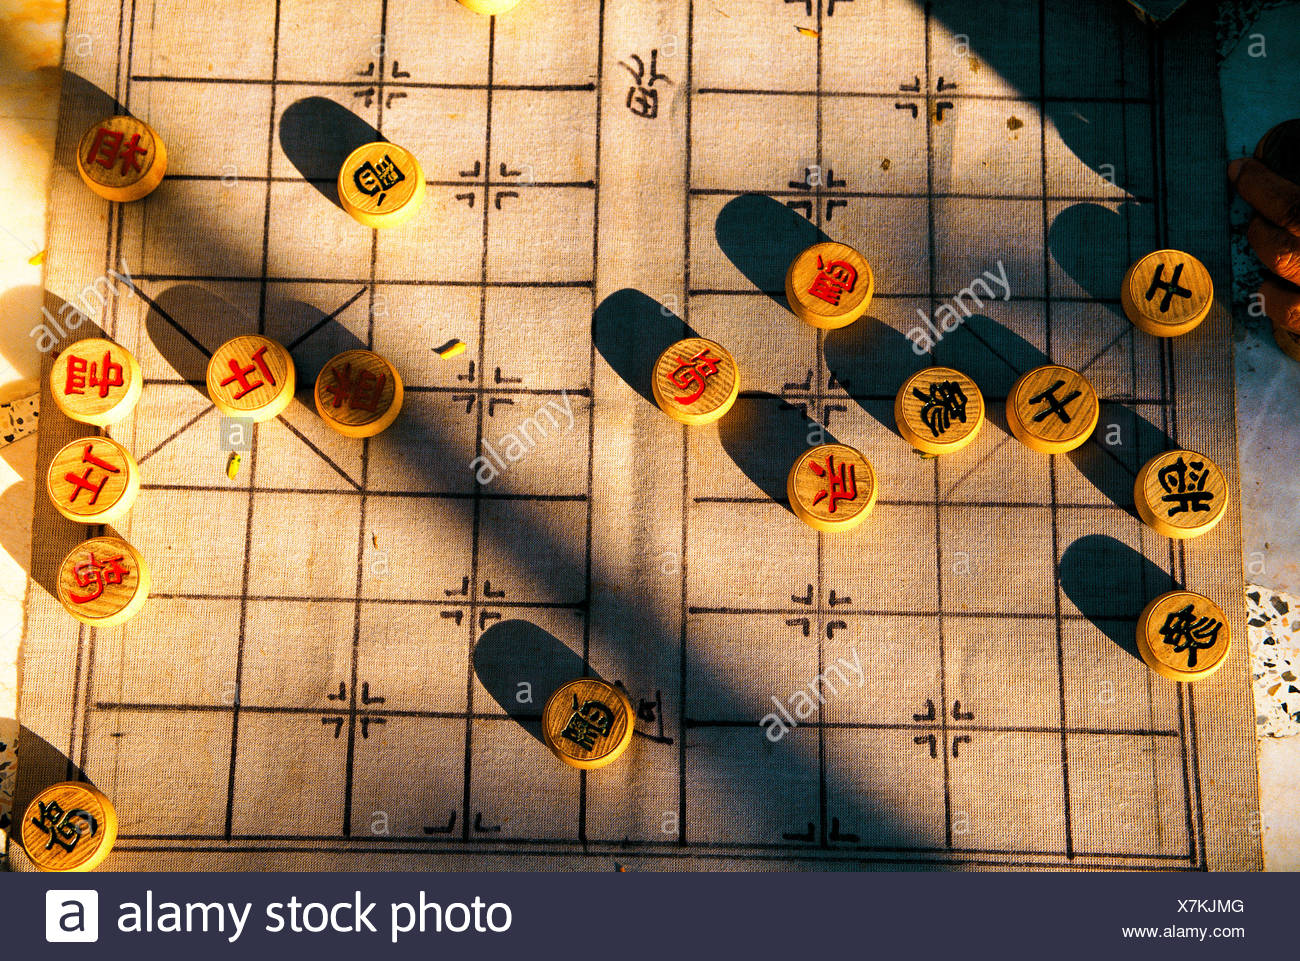 A Chinese table game played in parks usually by older men. - Stock Image